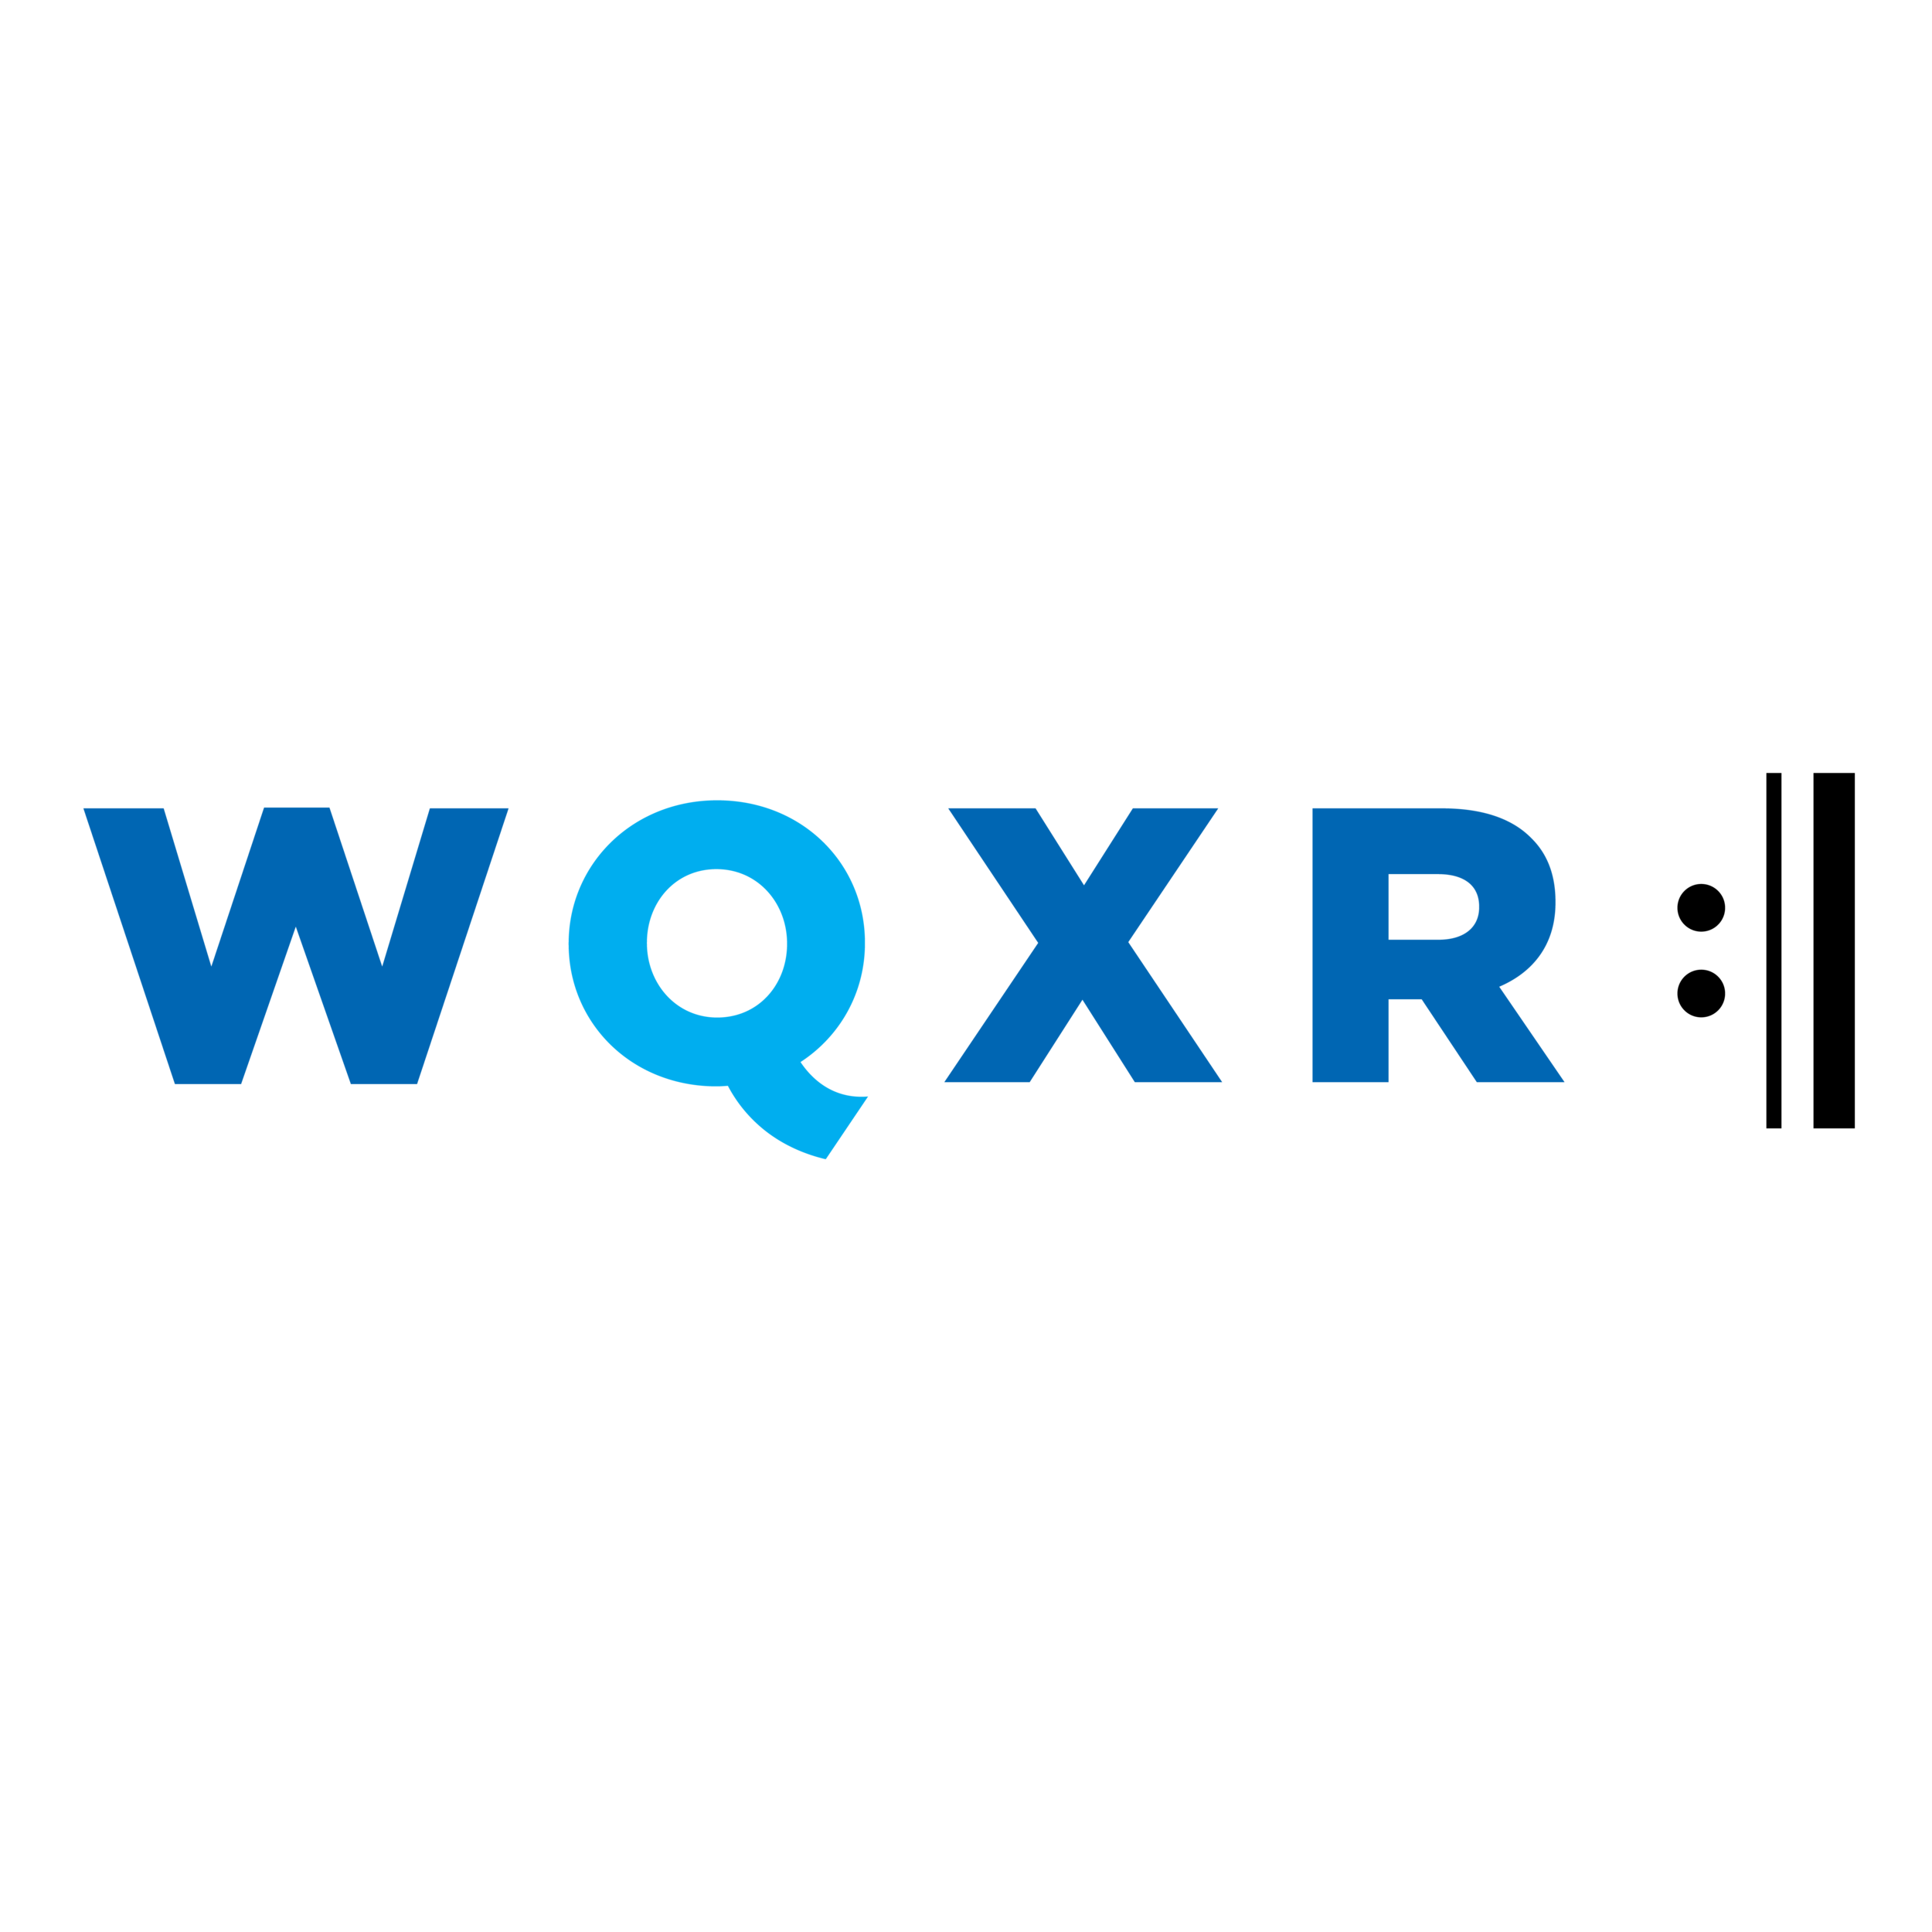 WQXR is the nation's most listened-to classical music station, making the very best classical music accessible to listeners nationwide.   Read more at wqxr.org